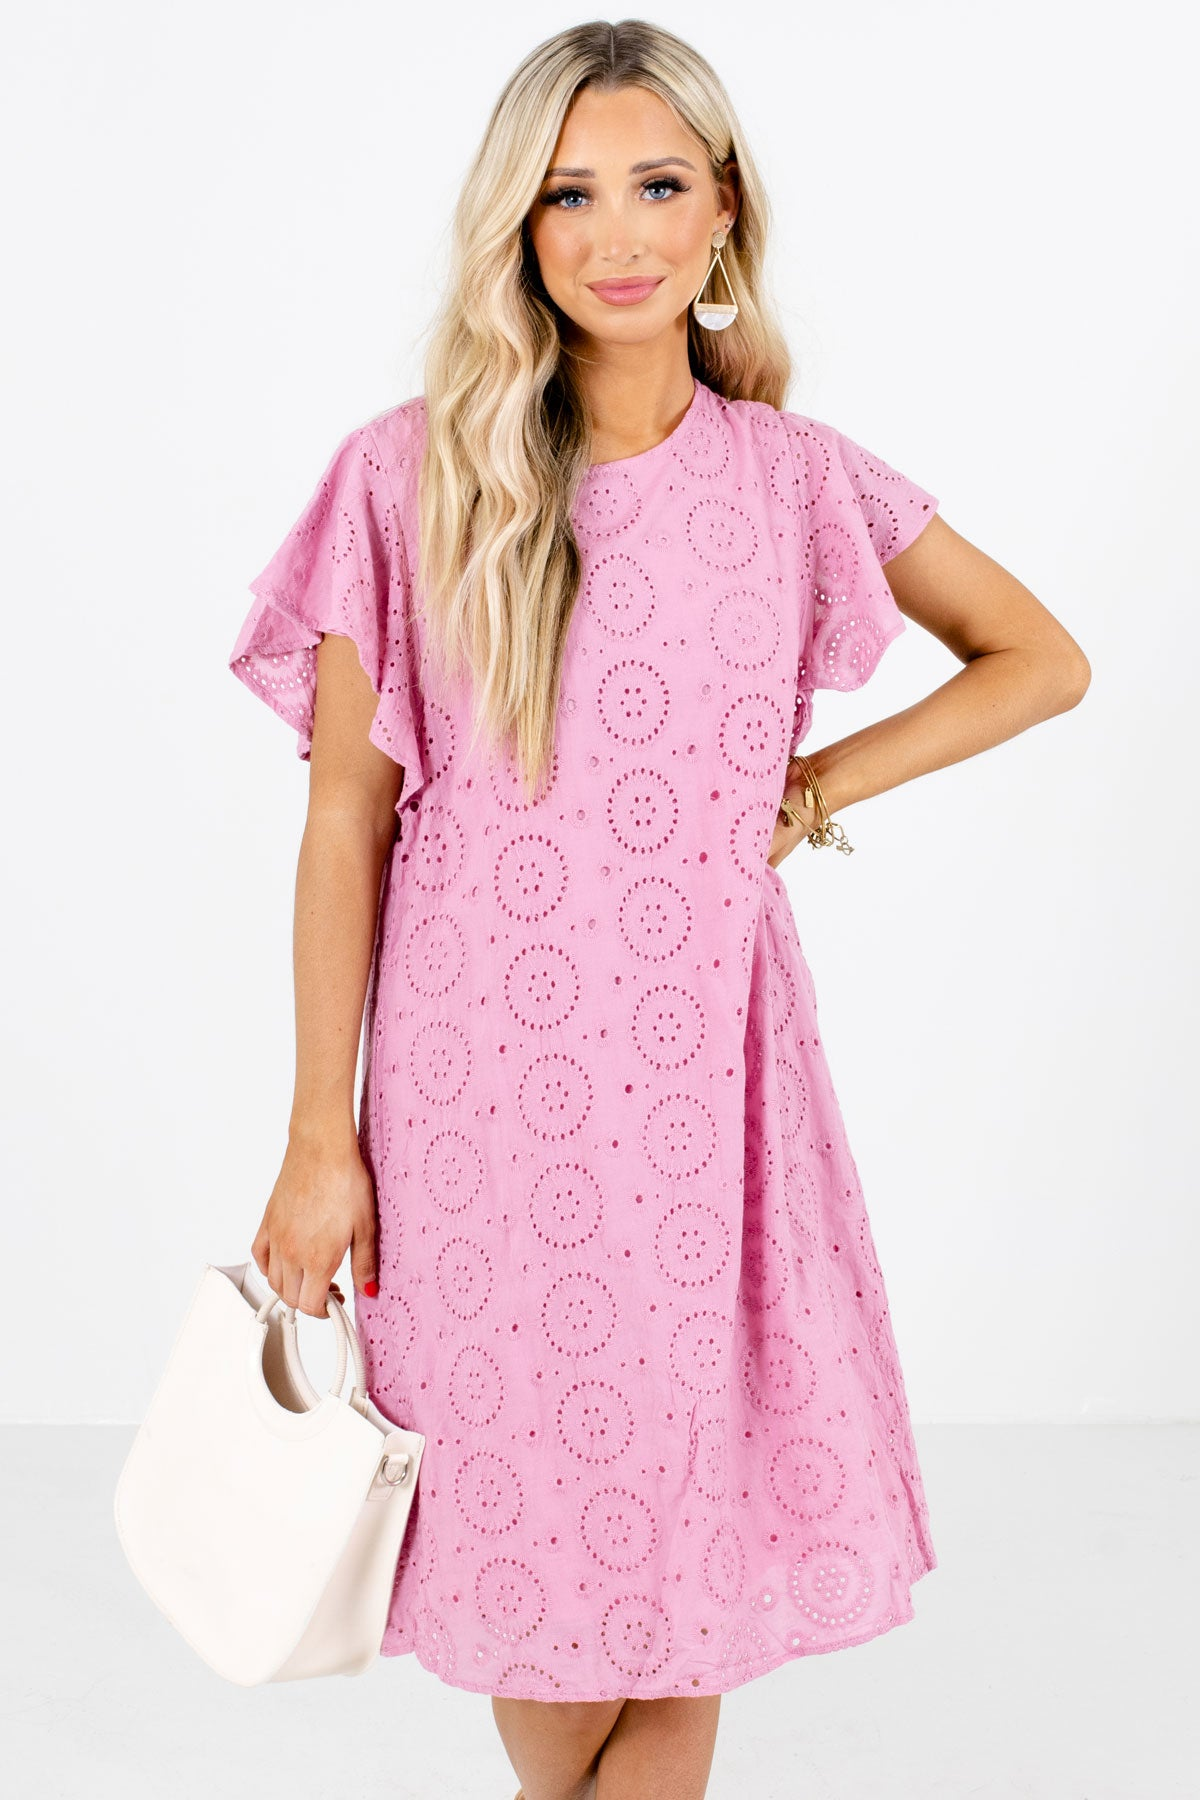 Pink Eyelet Material Boutique Knee-Length Dresses for Women